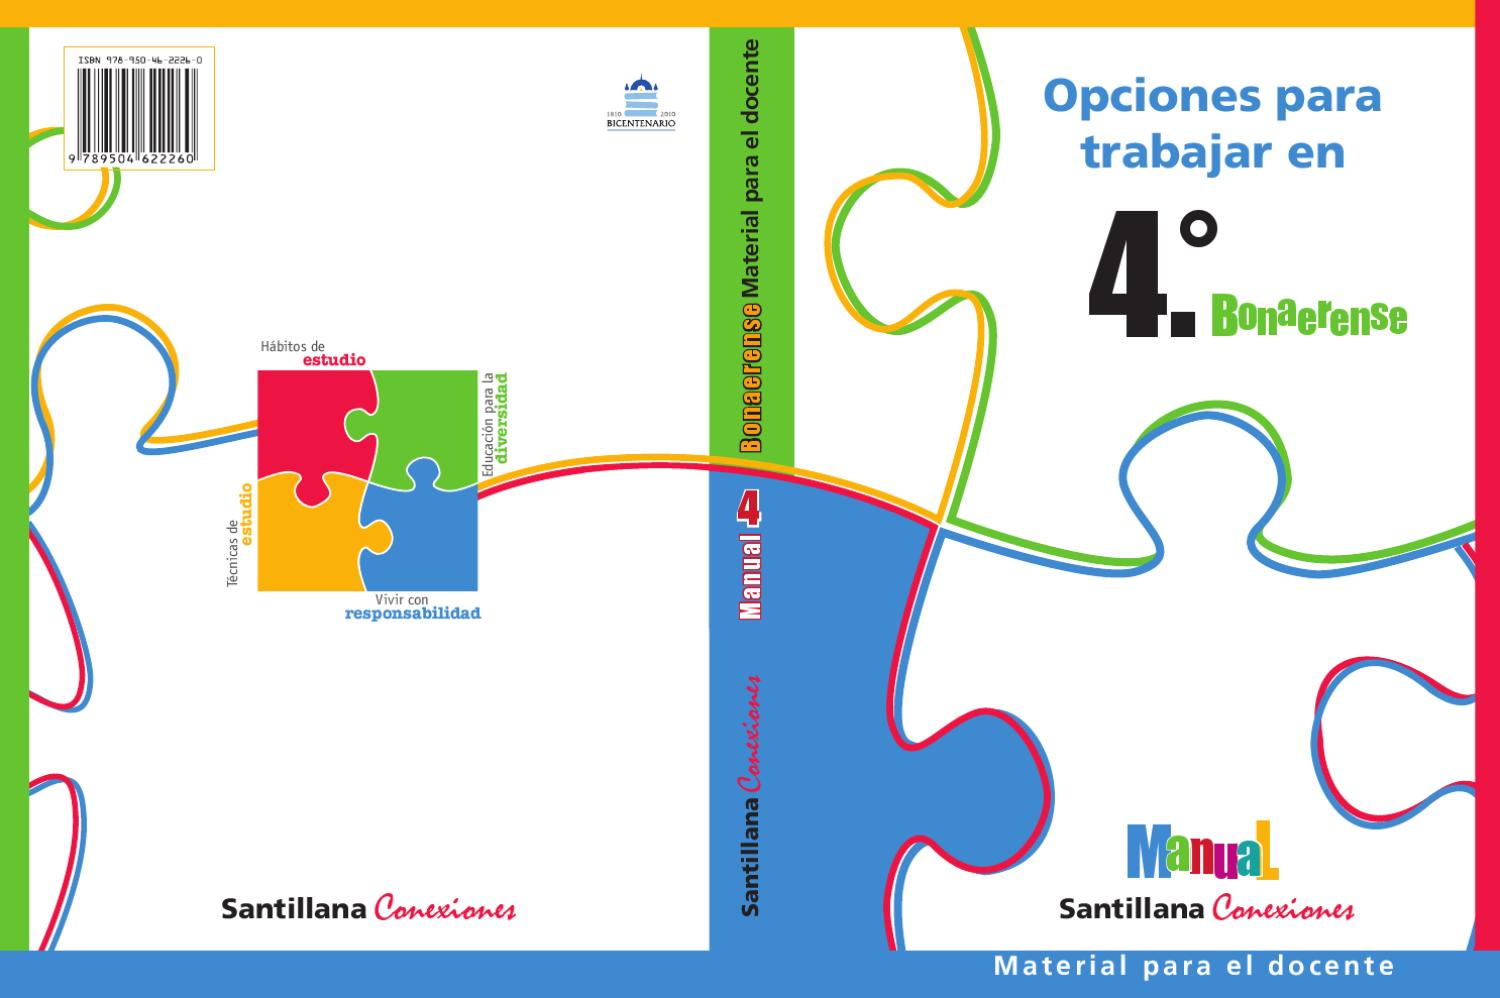 Manual Santillana Conexiones 4 Bonaerense by Marcela Lalia - issuu 6a07e499afe0